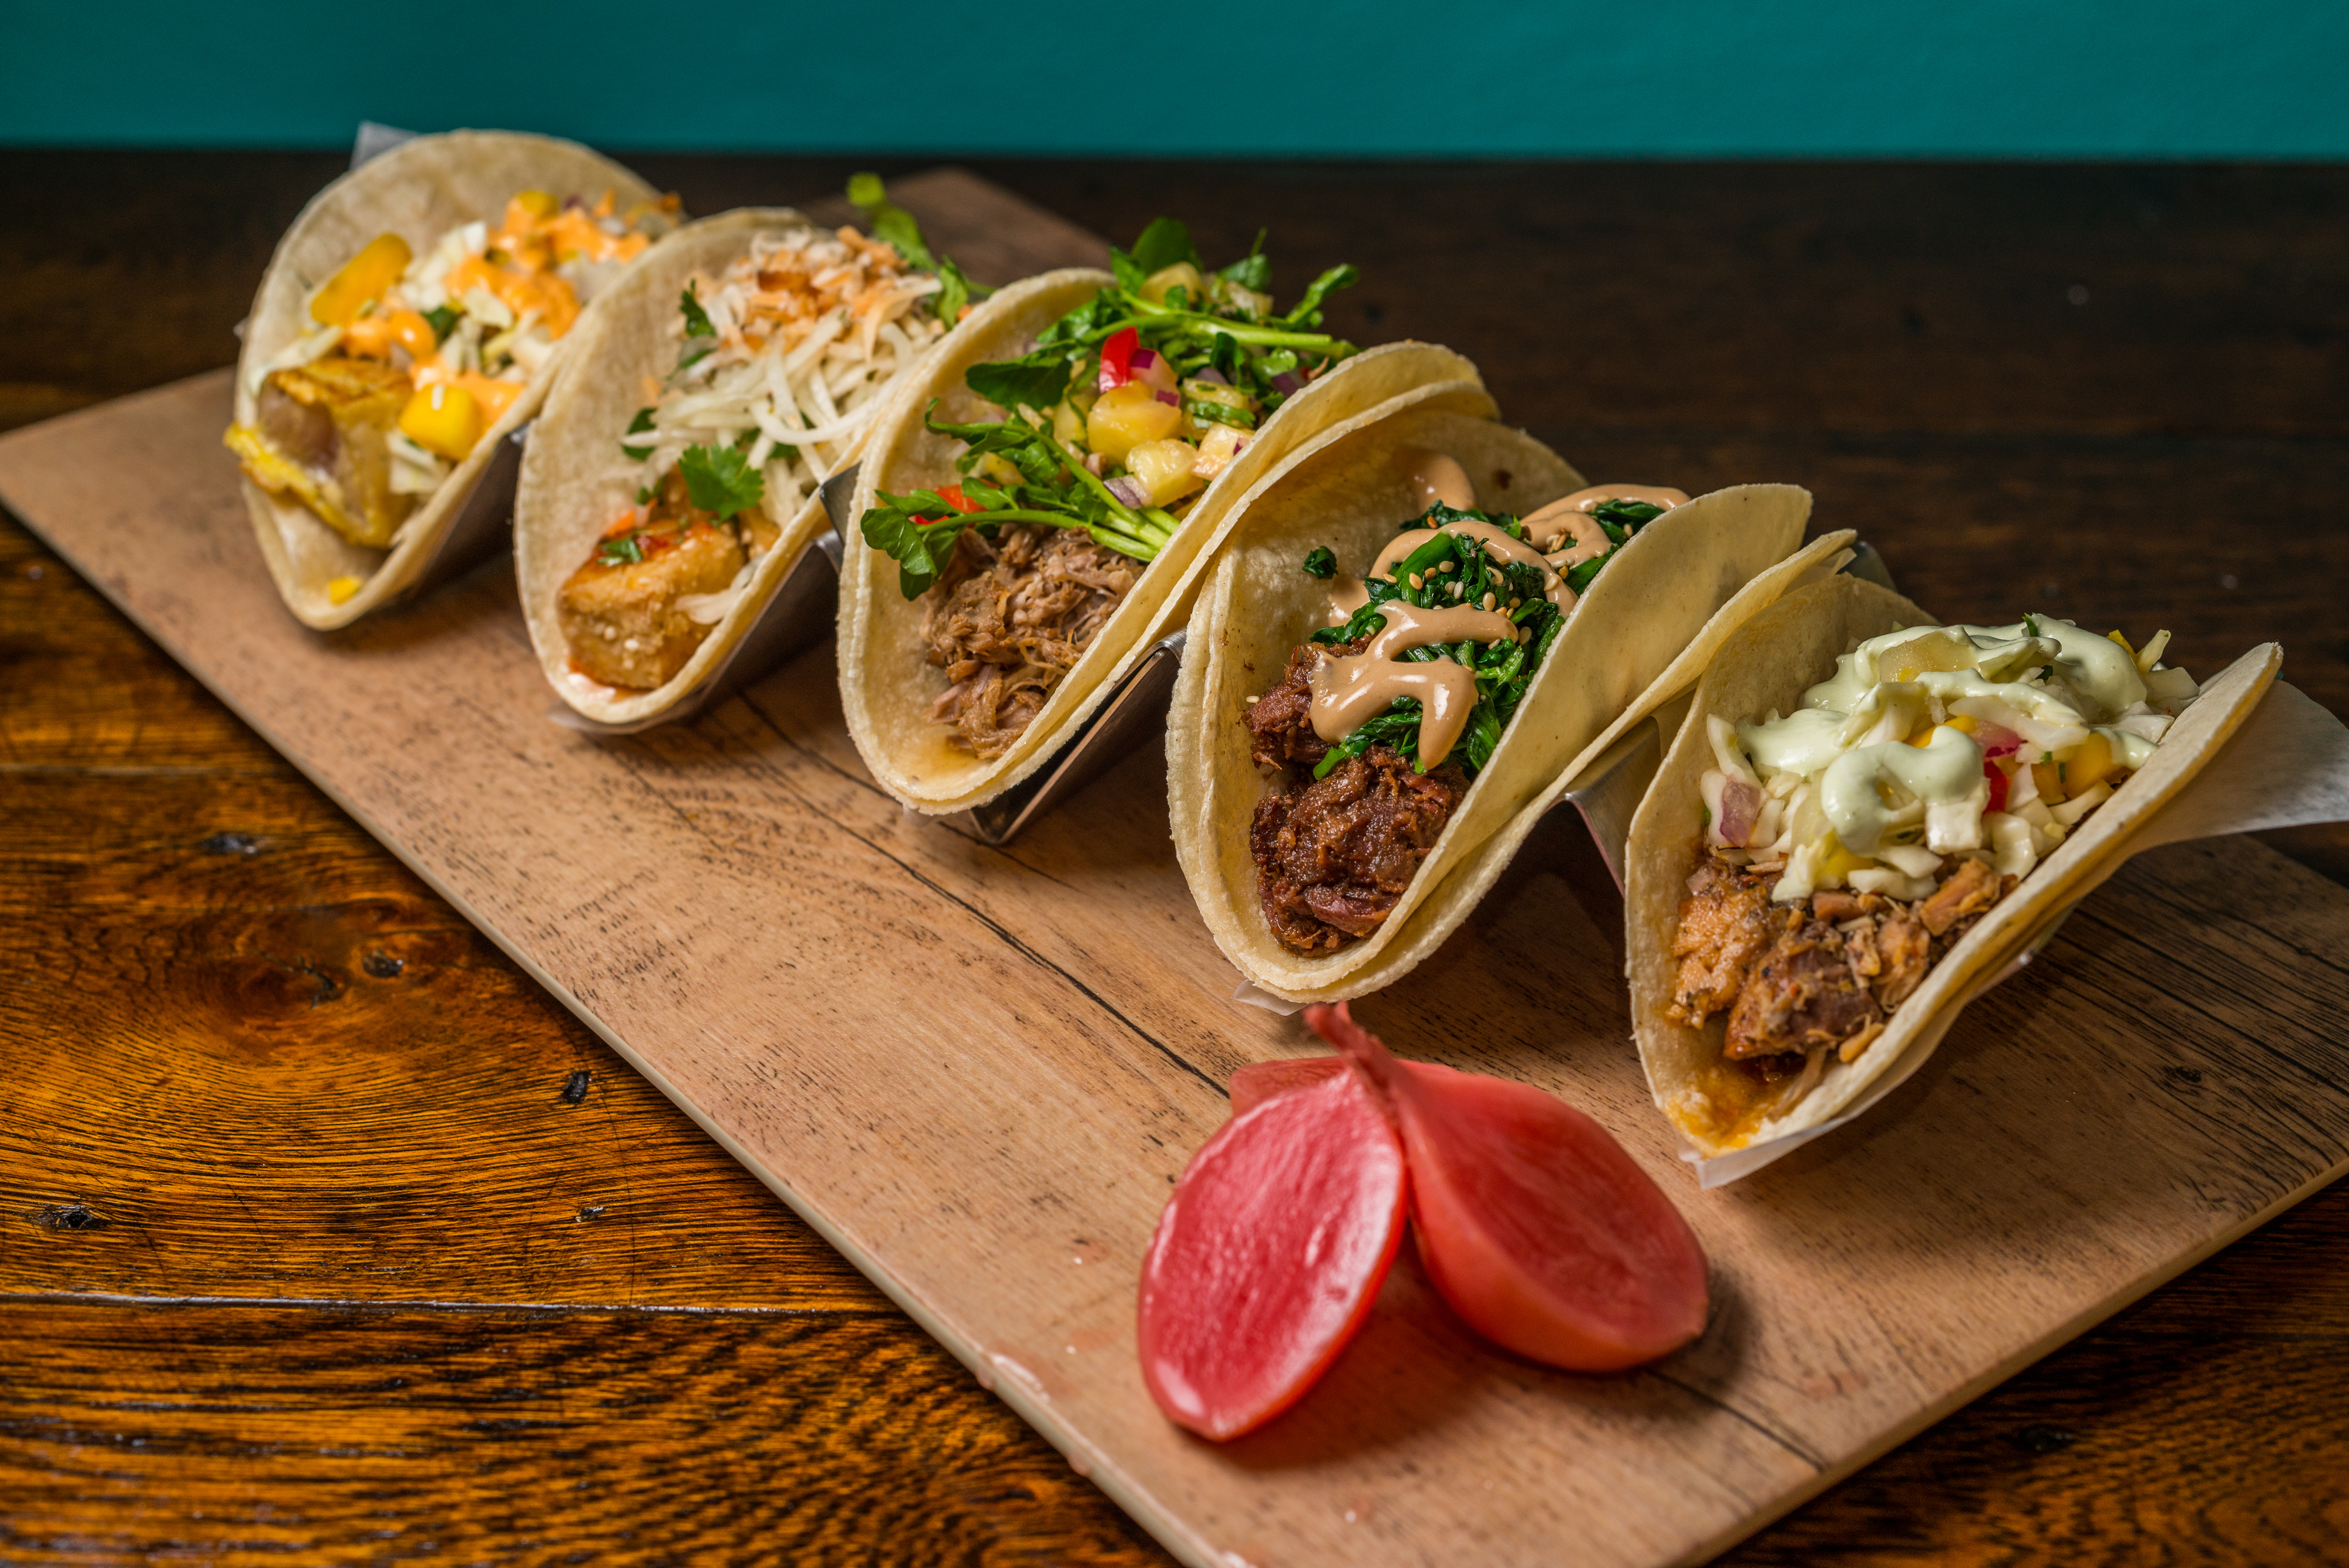 But the chef – who cut his teeth at Thunder Burger & Bar and the now-shuttered Rialto here in D.C., as well as the Royal Kona Resort on the Hawaii's Big Island – didn't want to do a straightforward taqueria. (Image: Courtesy Tiki Taco)